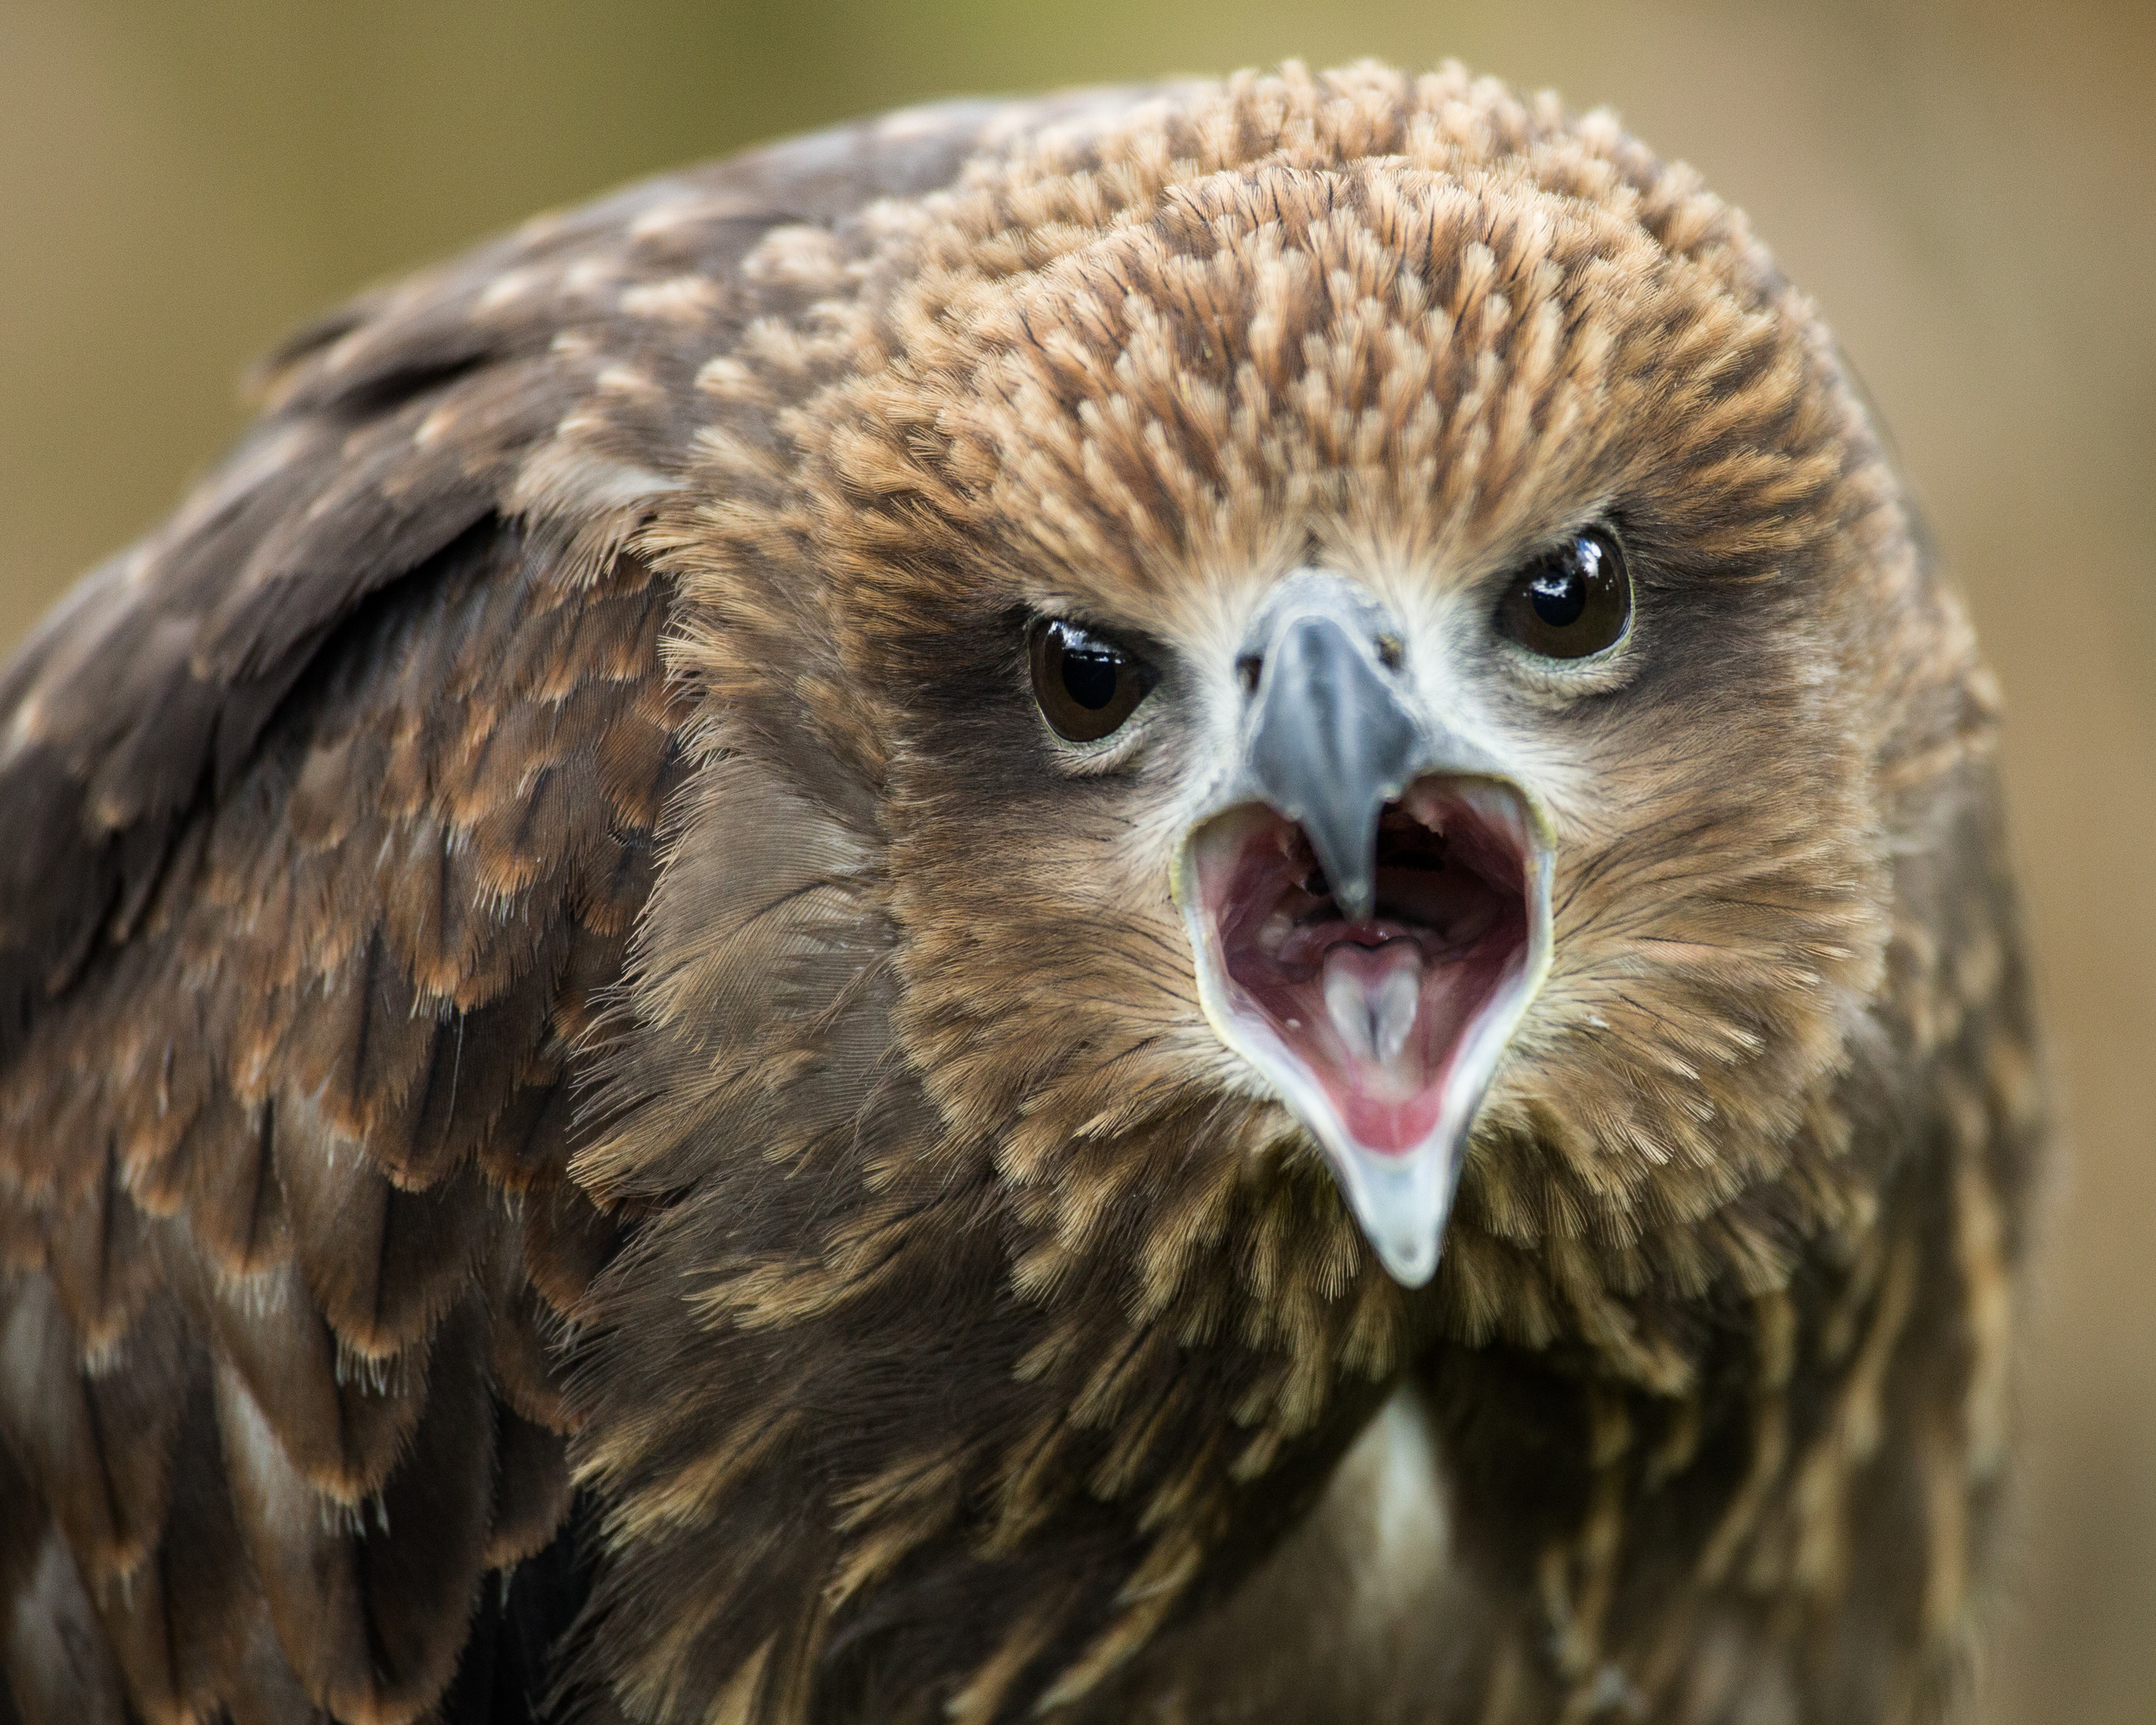 A remarkably vocal Brahminy Kite at the International Centre for Birds of Prey